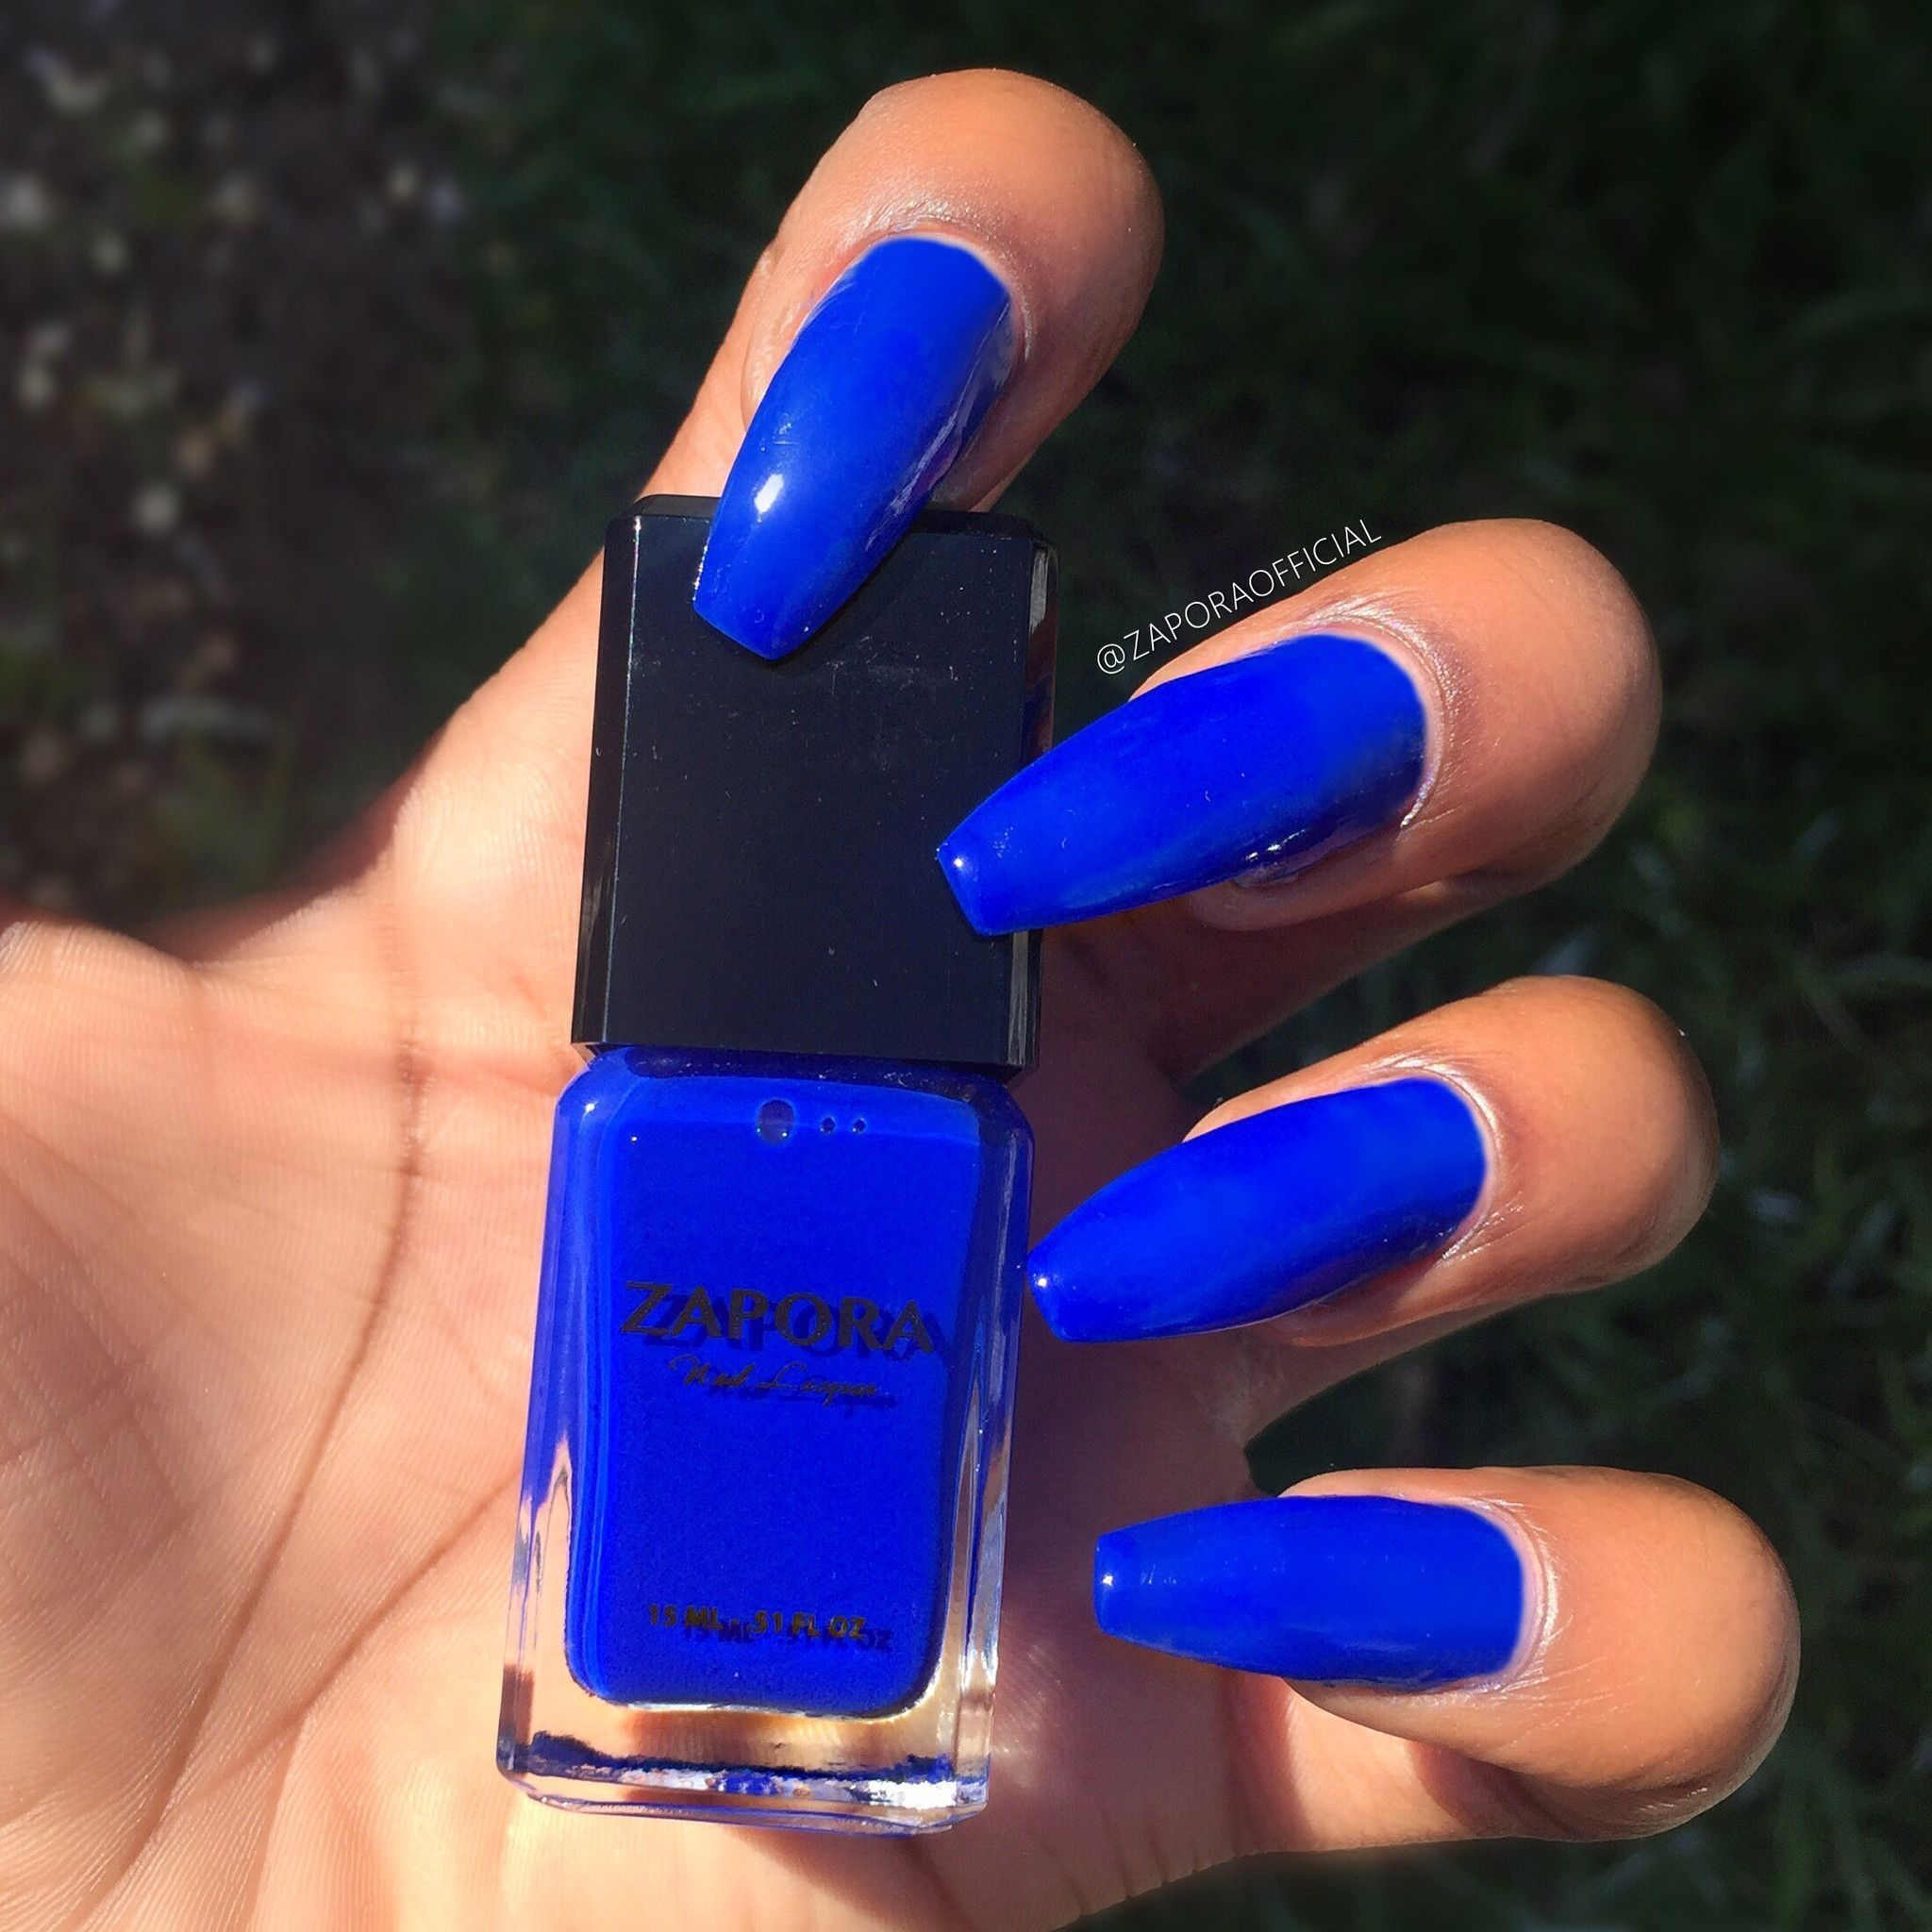 Blue Story Zapora Nail Lacquer In 2020 Blue Acrylic Nails Royal Blue Nails Long Acrylic Nails